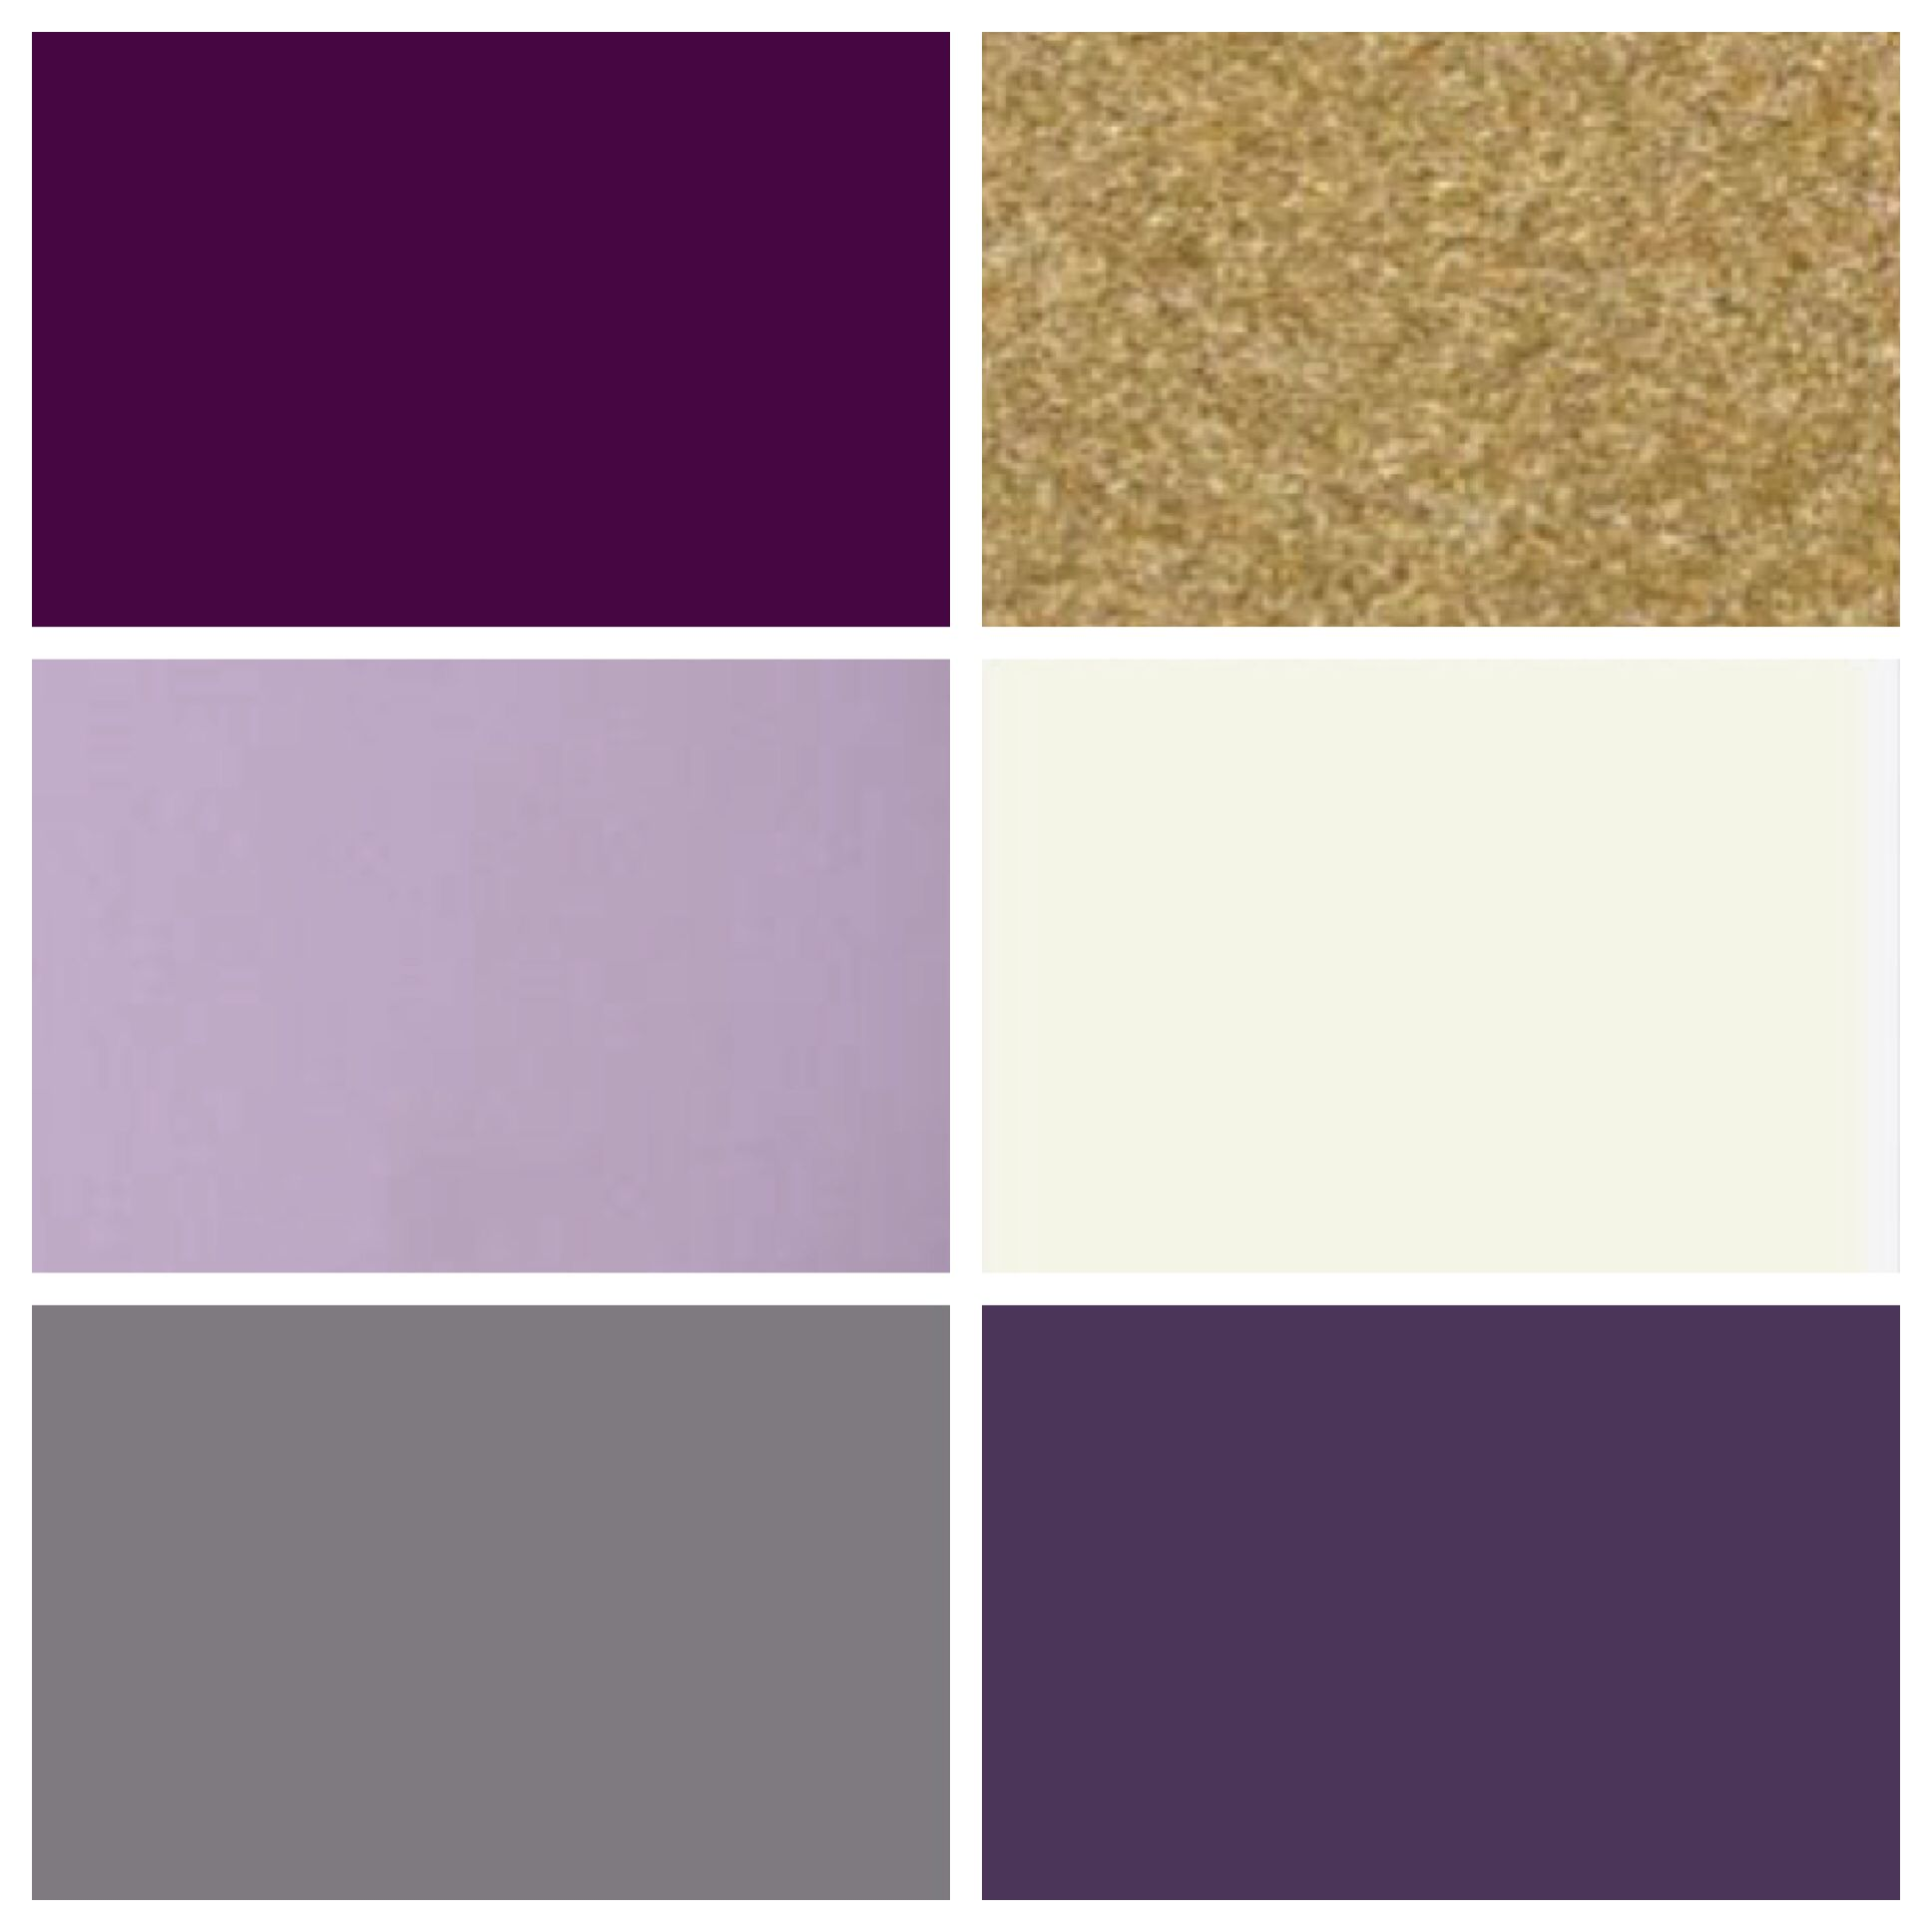 C J Wedding Color Palette Plum Lilac